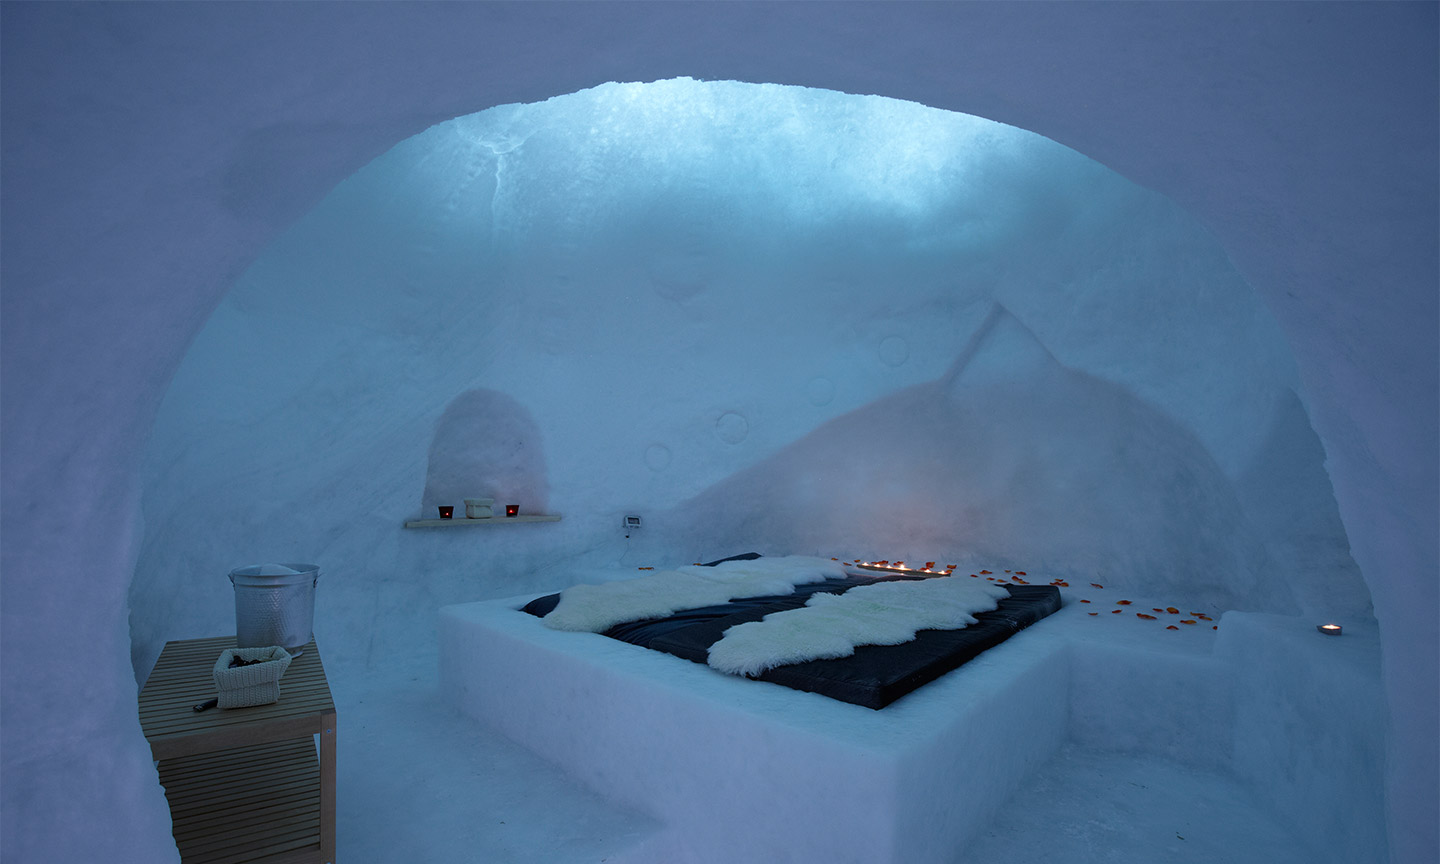 igloo-slideshow-1.jpg